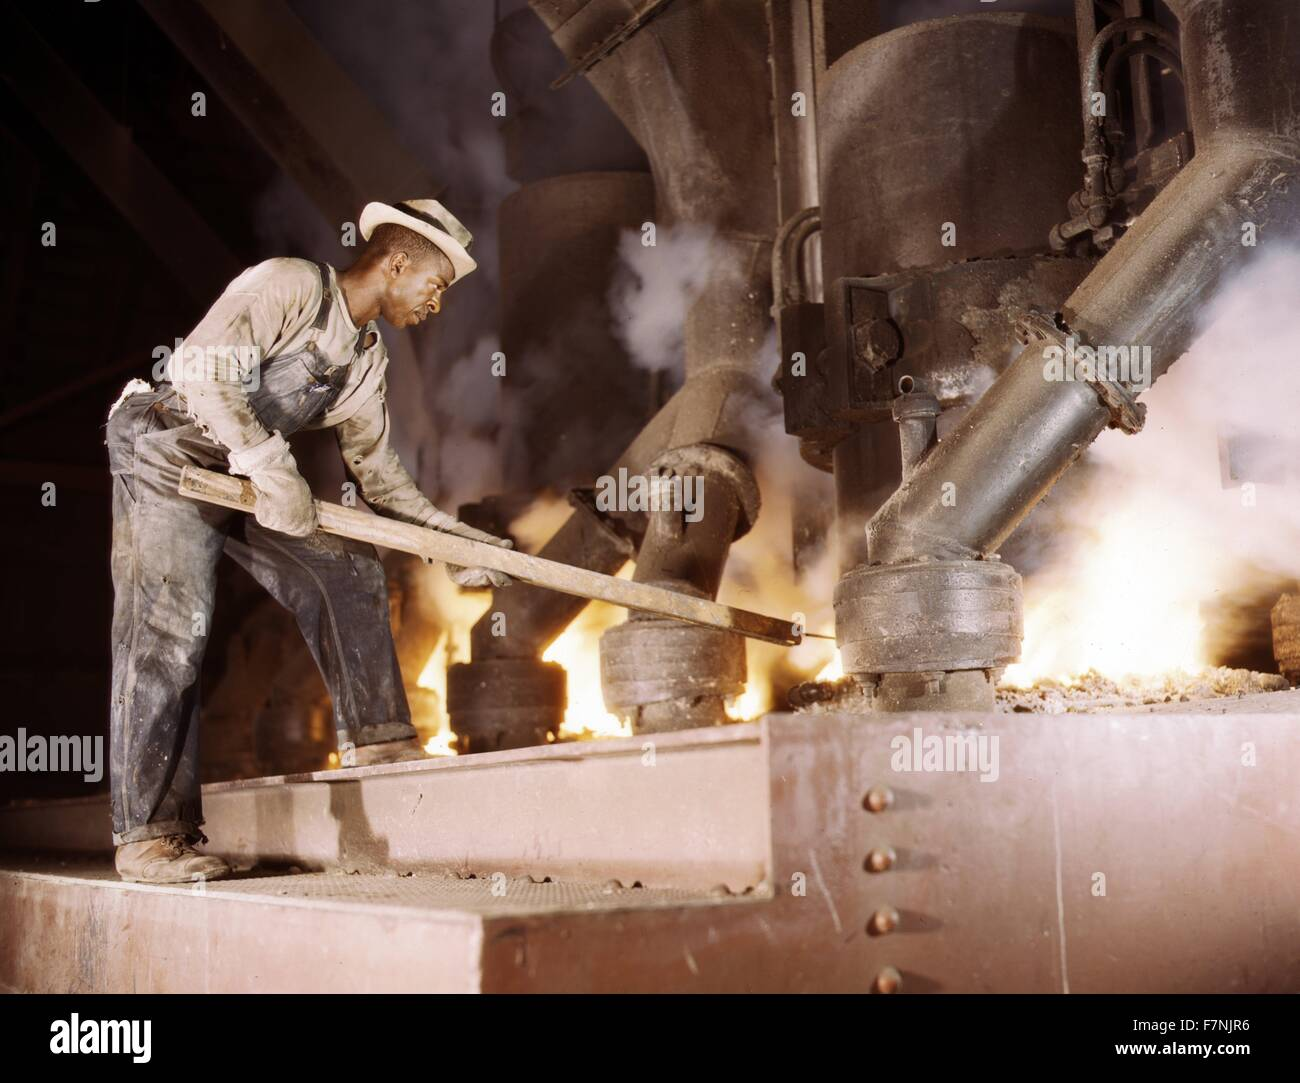 A large electric phosphate smelting furnace used to make elemental phosphorus in a TVA chemical plant in the vicinity - Stock Image